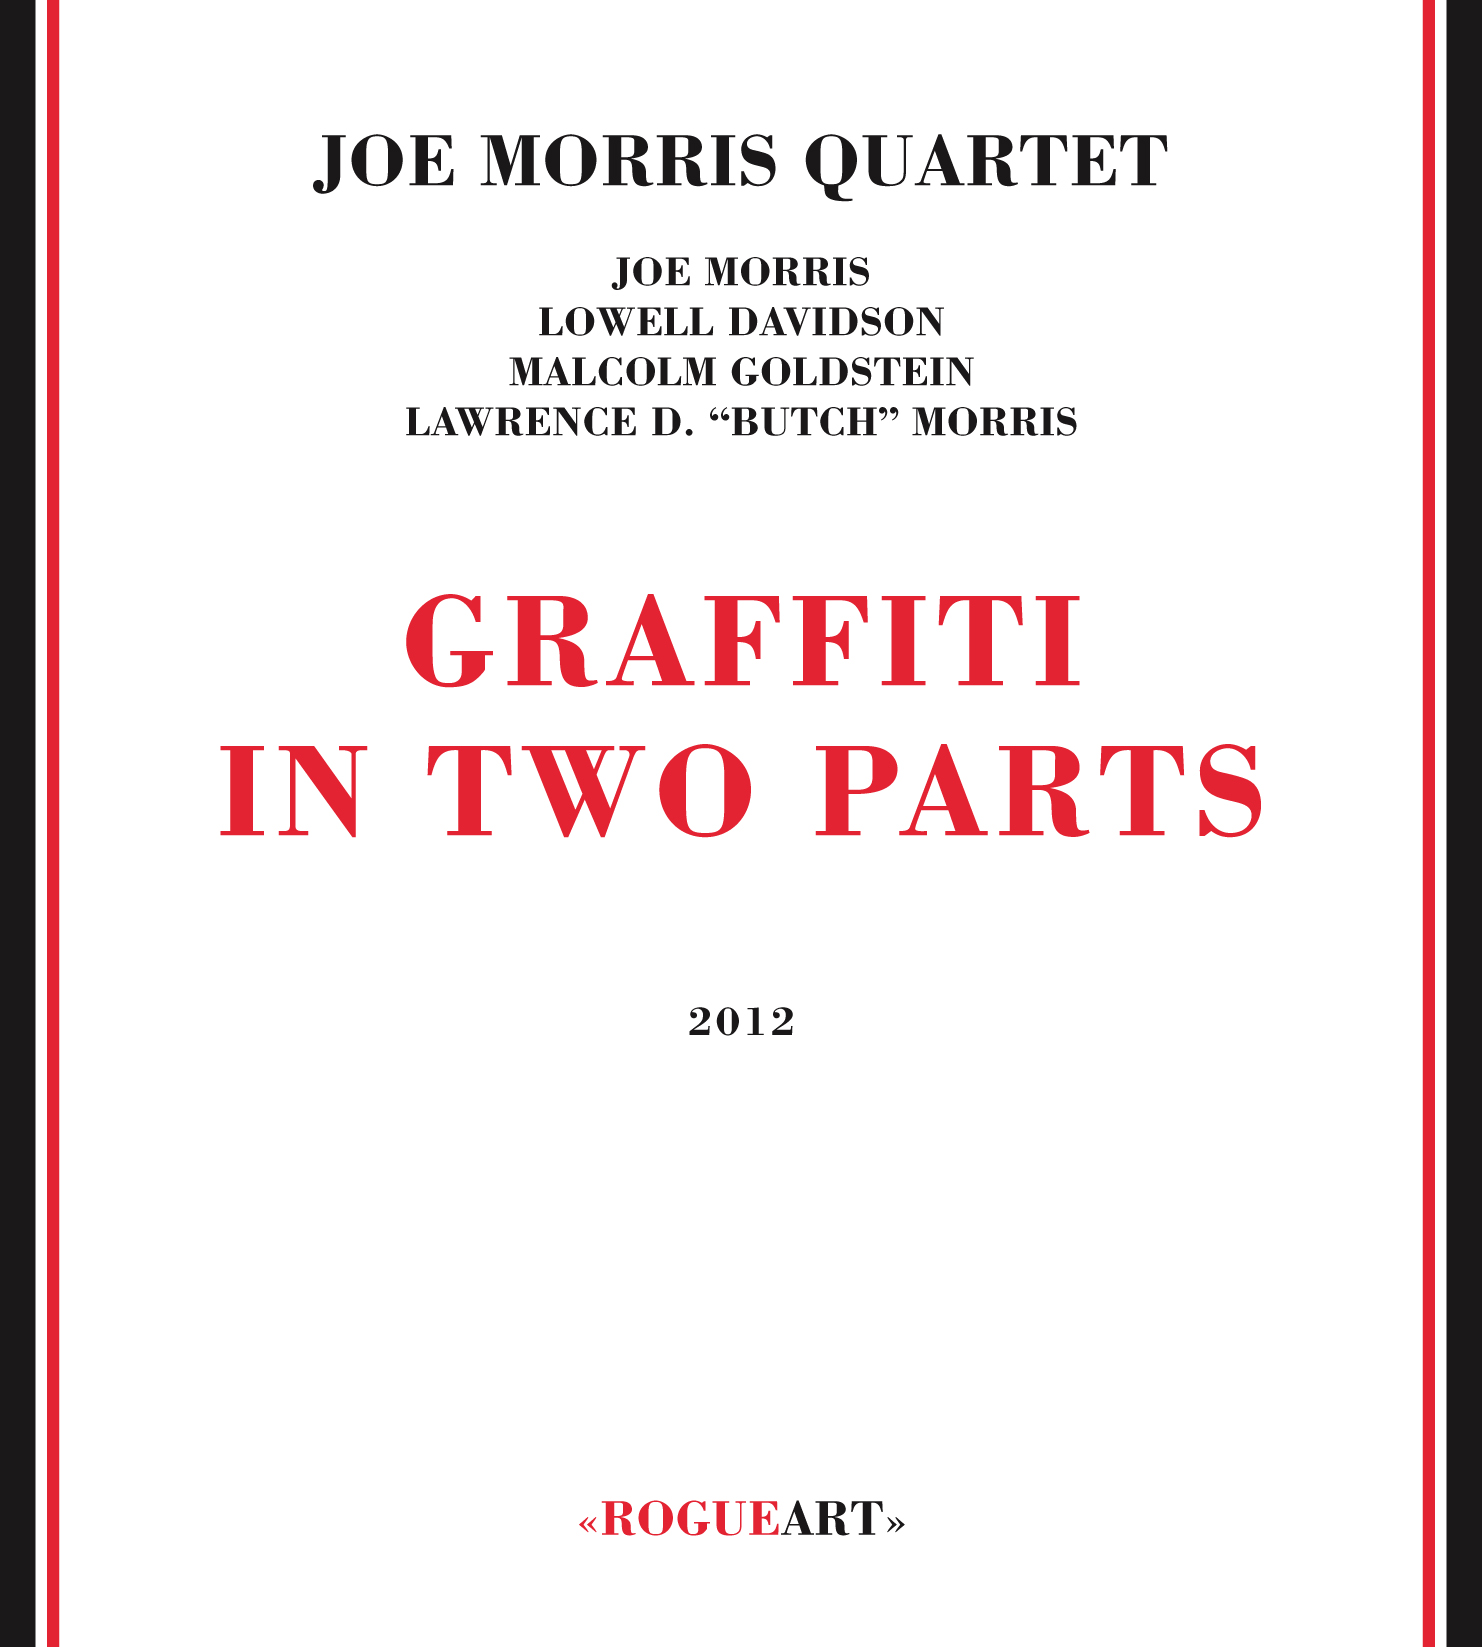 Front cover of the album GRAFFITI IN TWO PARTS